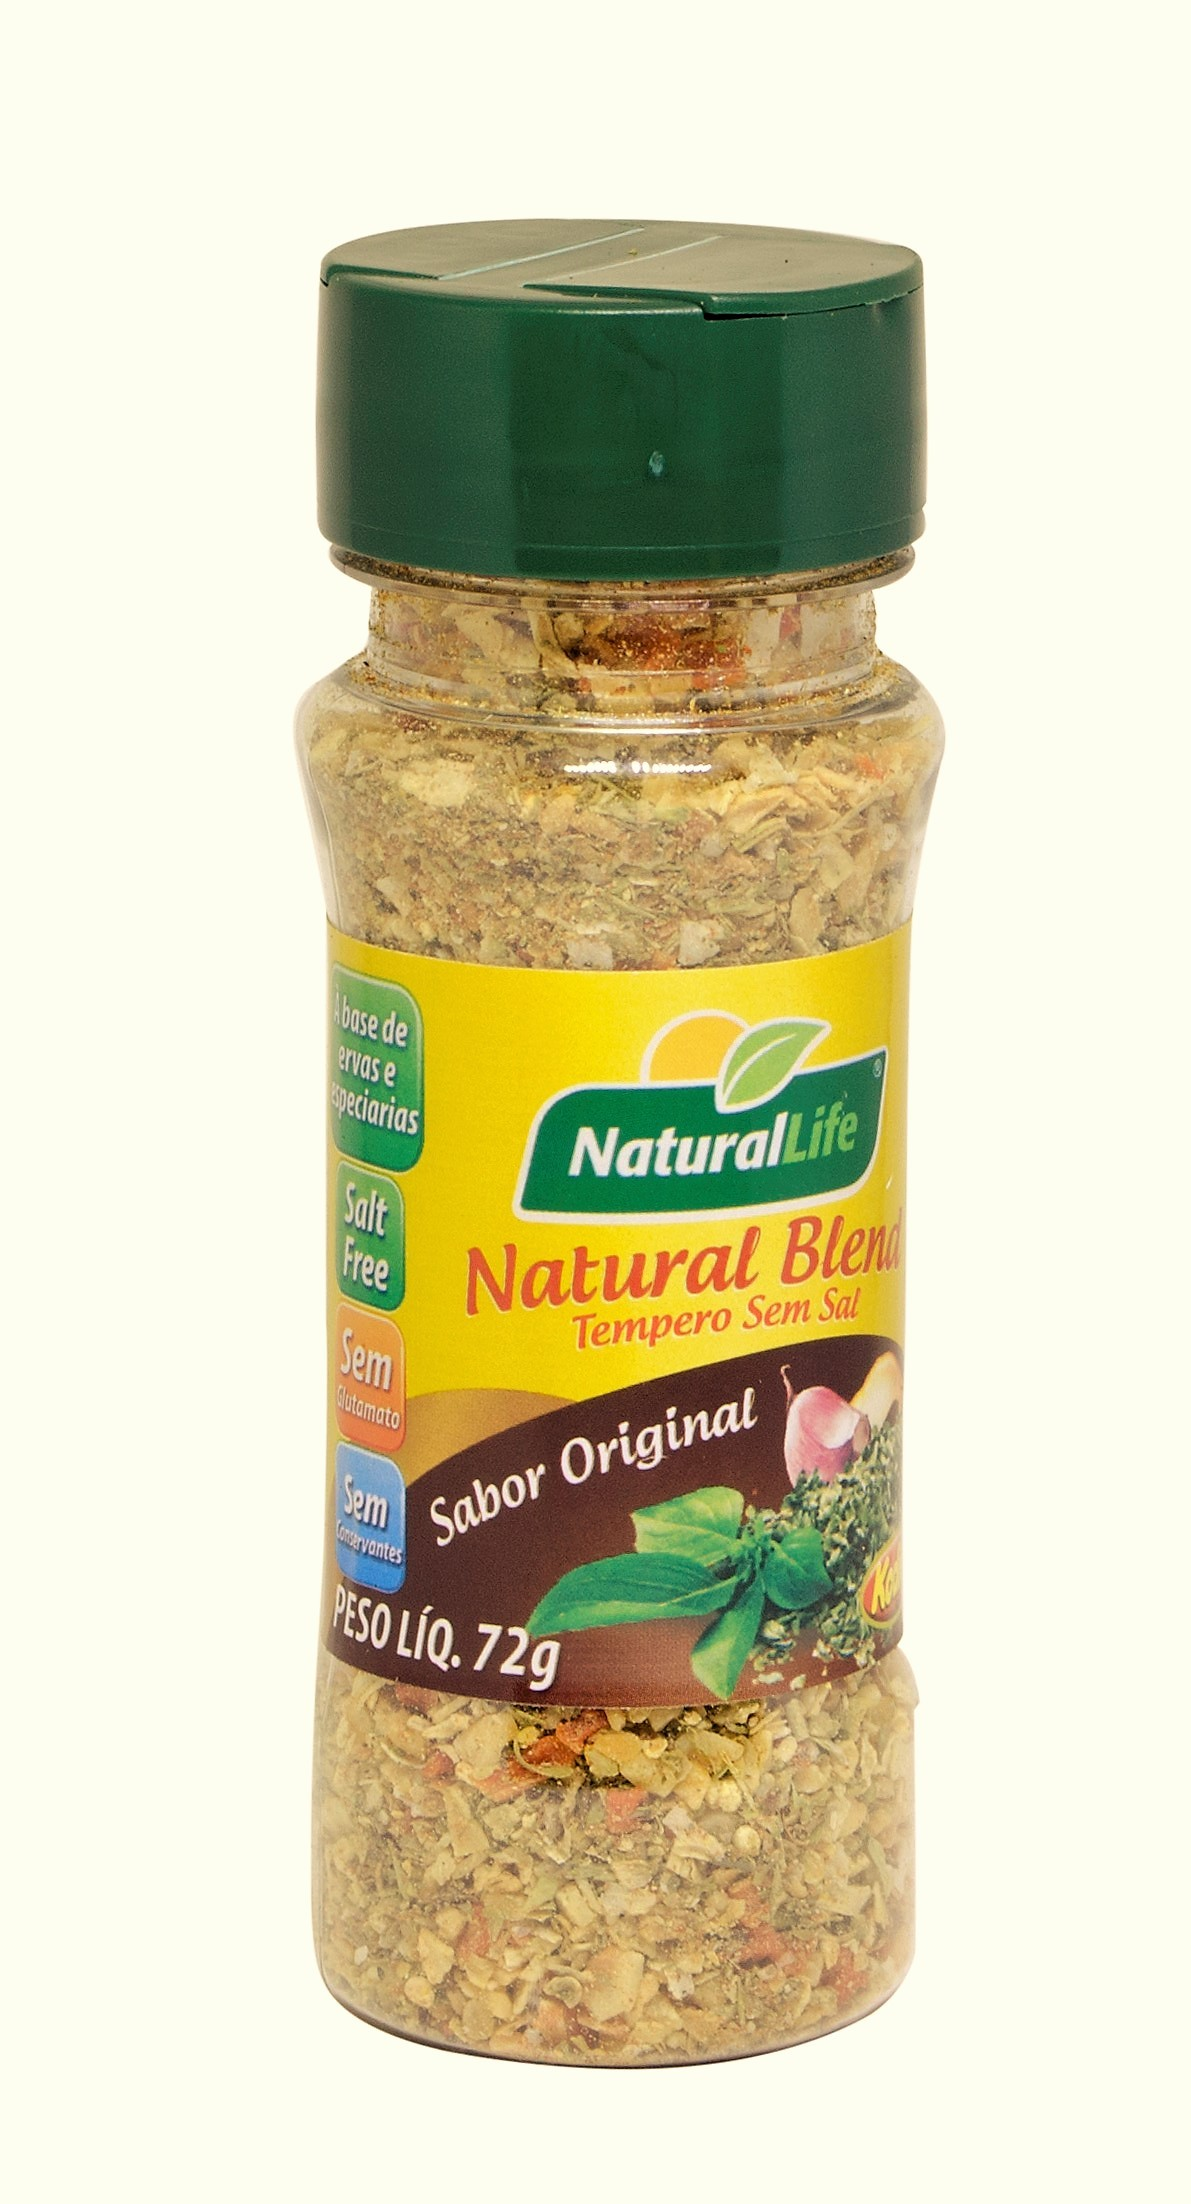 Natural Blend Tempero Sem Sal - Frasco - 70g - Natural Life